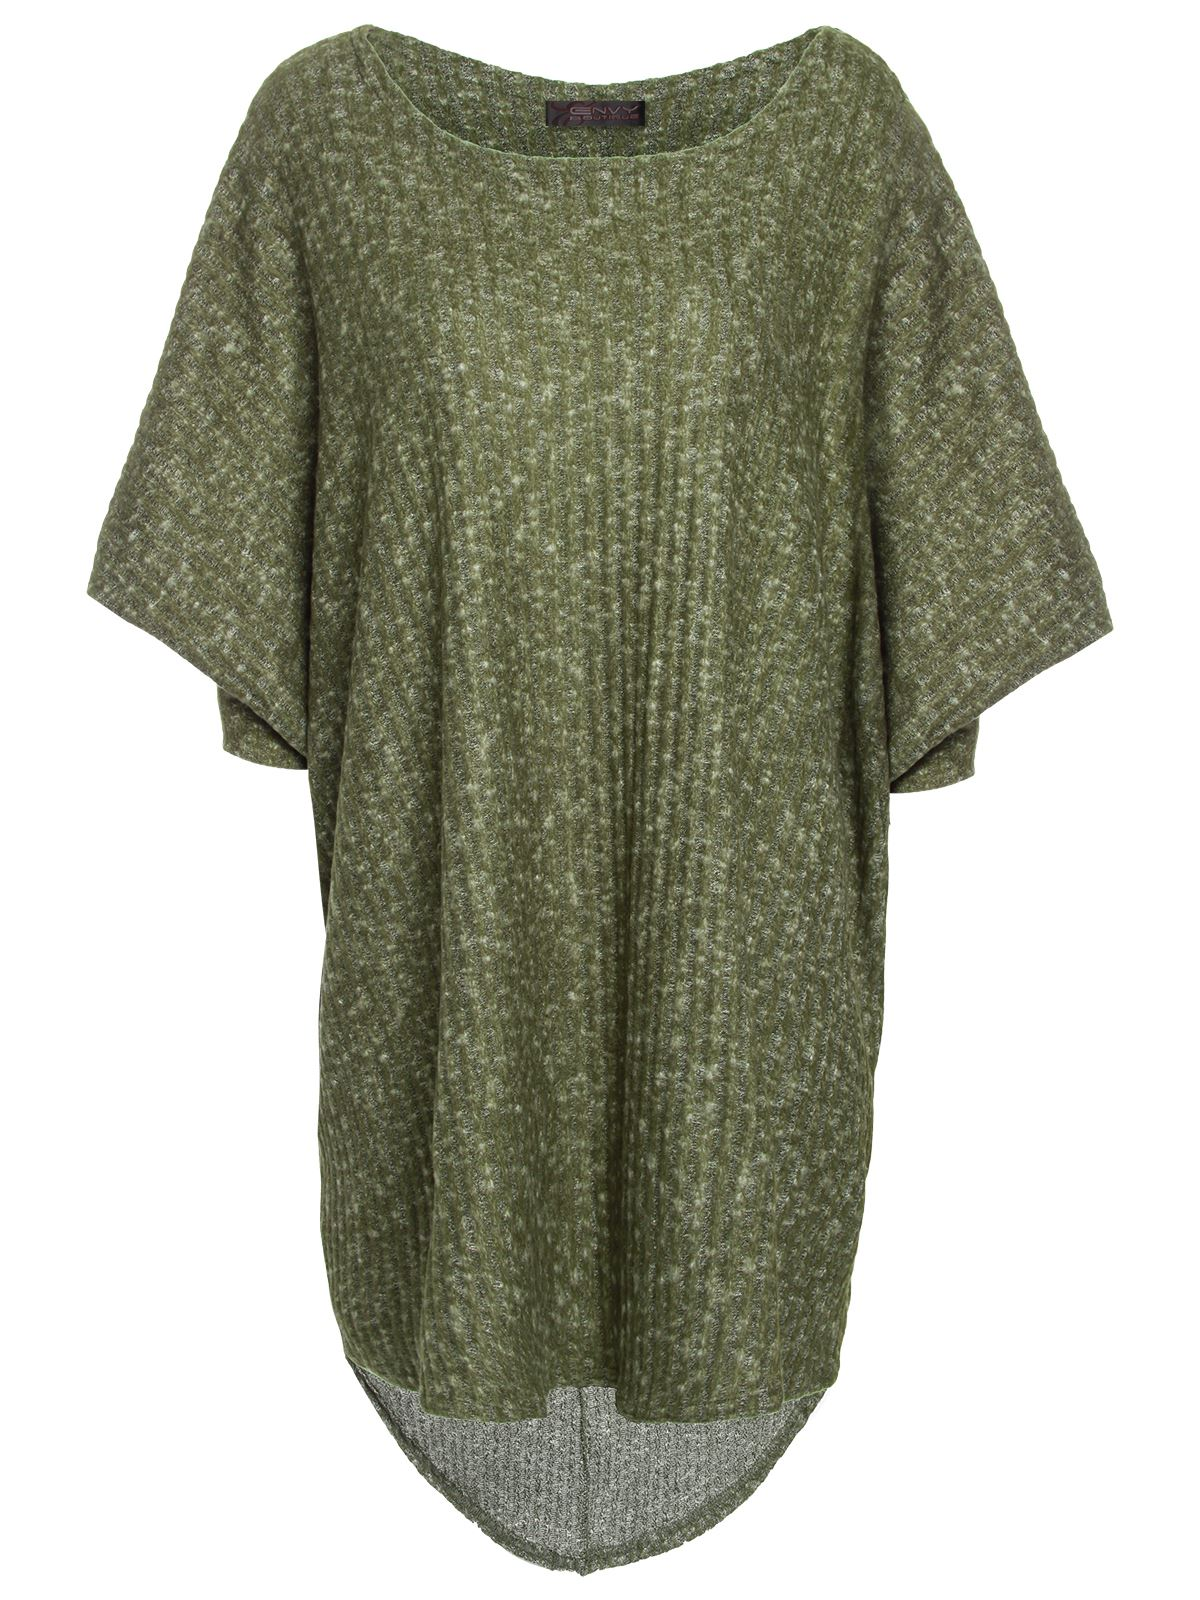 ladies womens oversized baggy batwing jumper top knitted high low